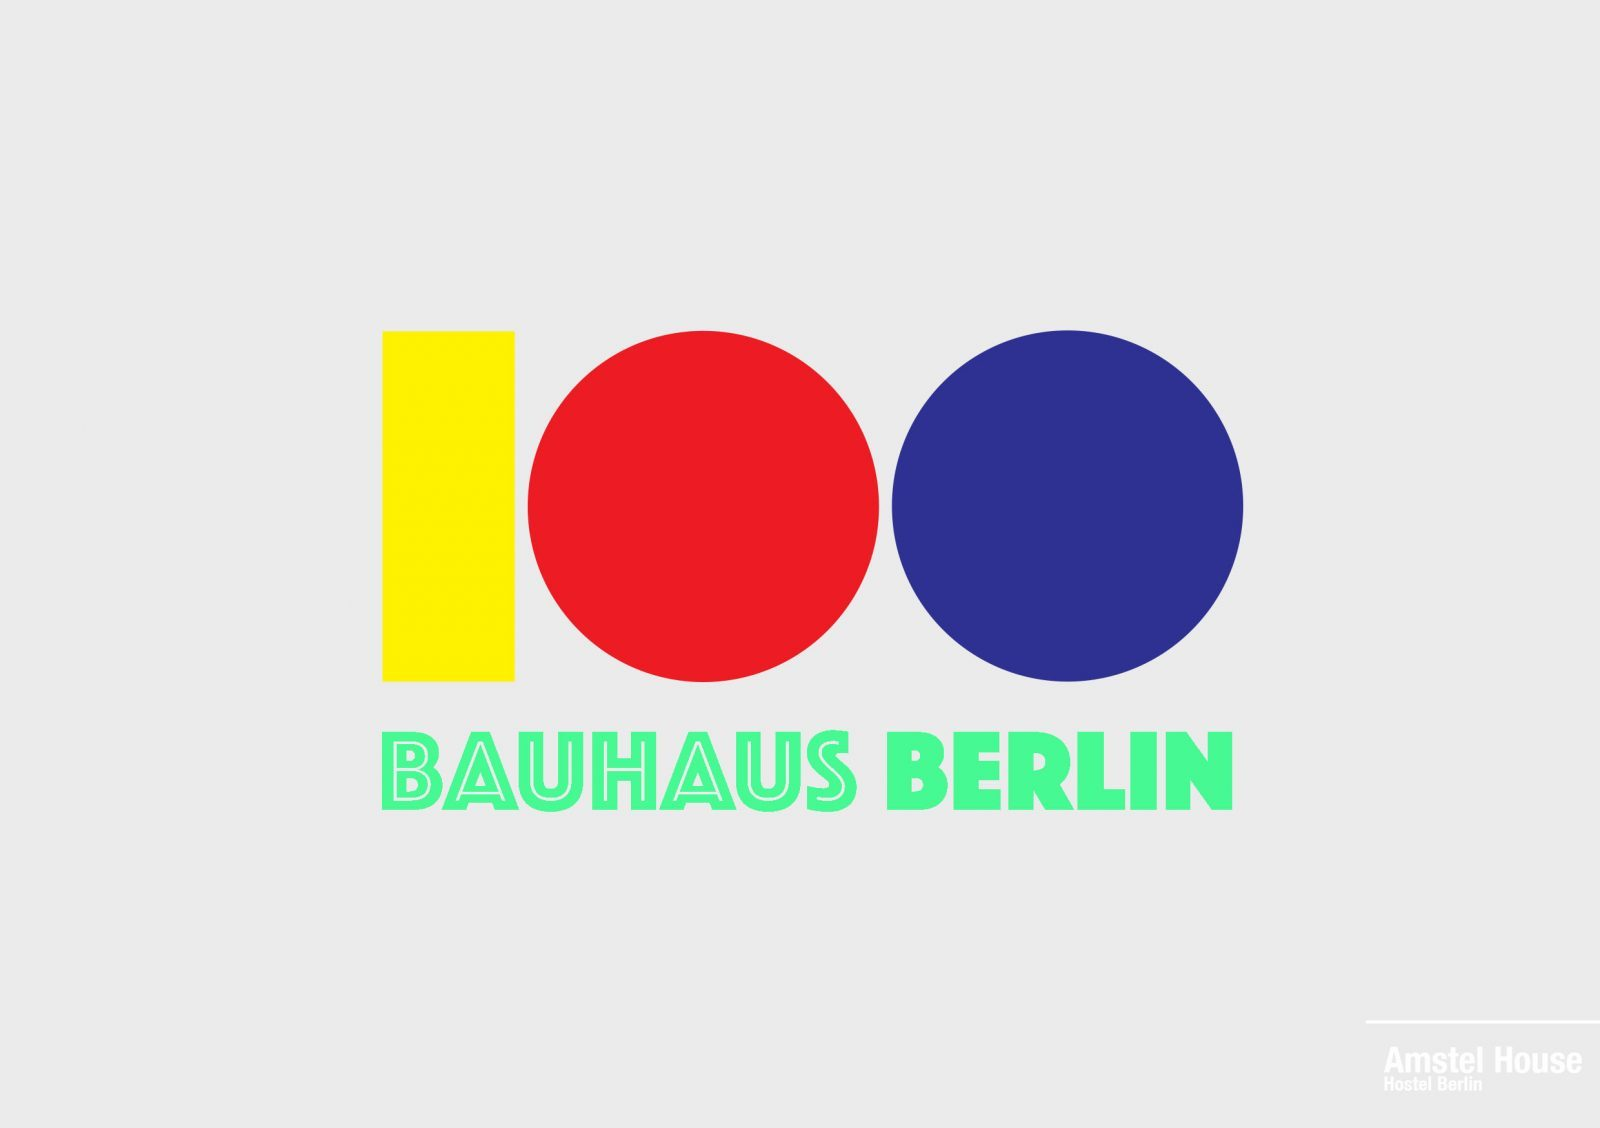 100 years Bauhaus in Berlin